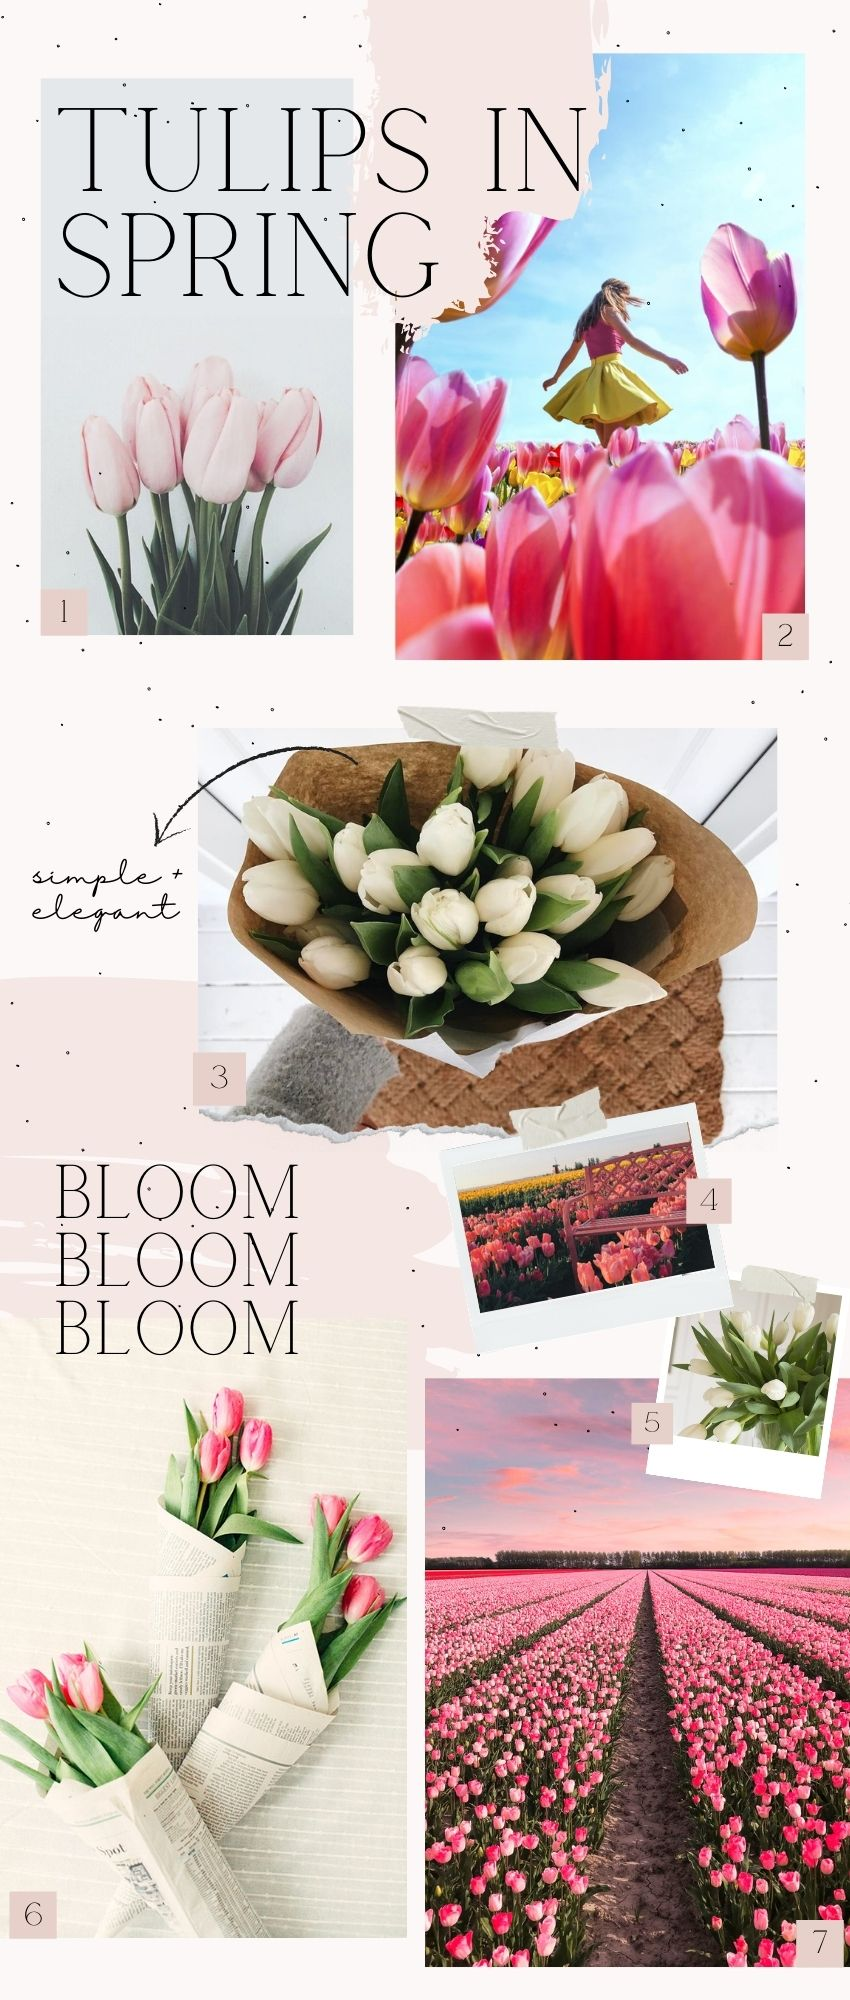 On this week's Monday Muse, we're celebrating tulips!  For some serious springtime vibes, browse through for pretty blooms and inspiration! #tulips #tulipsaesthetic #springaesthetic #spring #tulipandsage